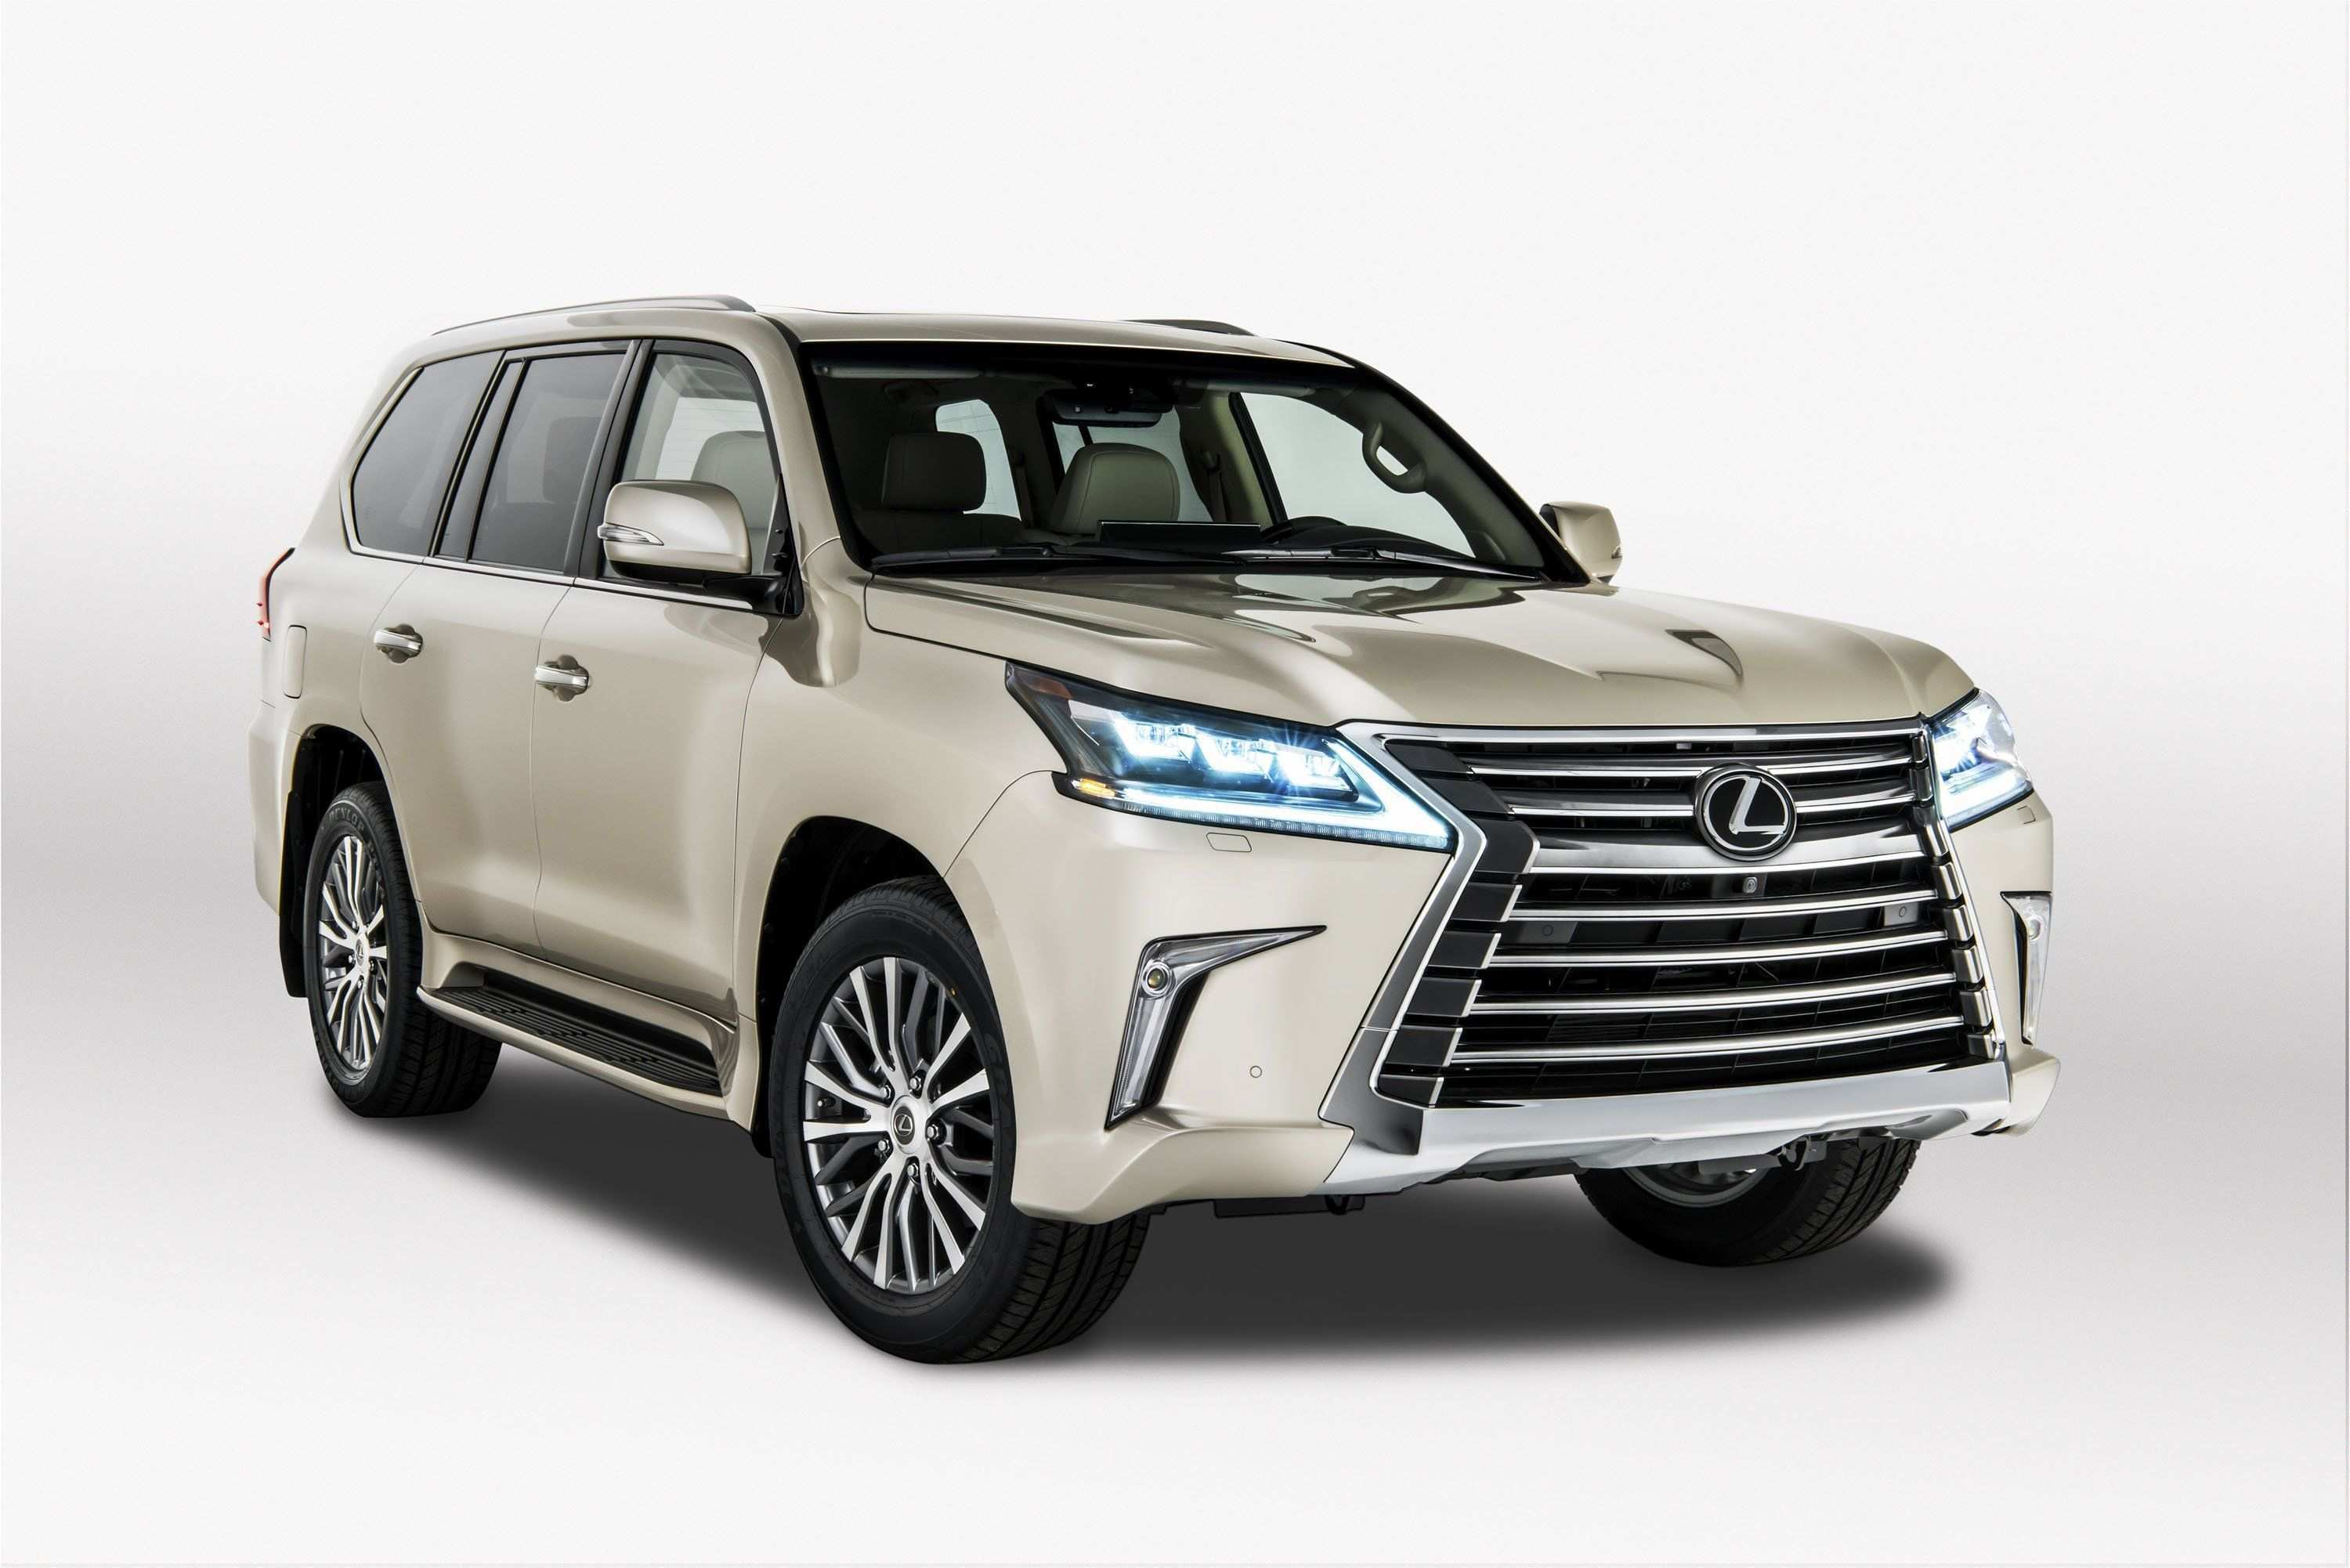 42 Best Review Lexus Van 2019 Specs And Review Prices by Lexus Van 2019 Specs And Review